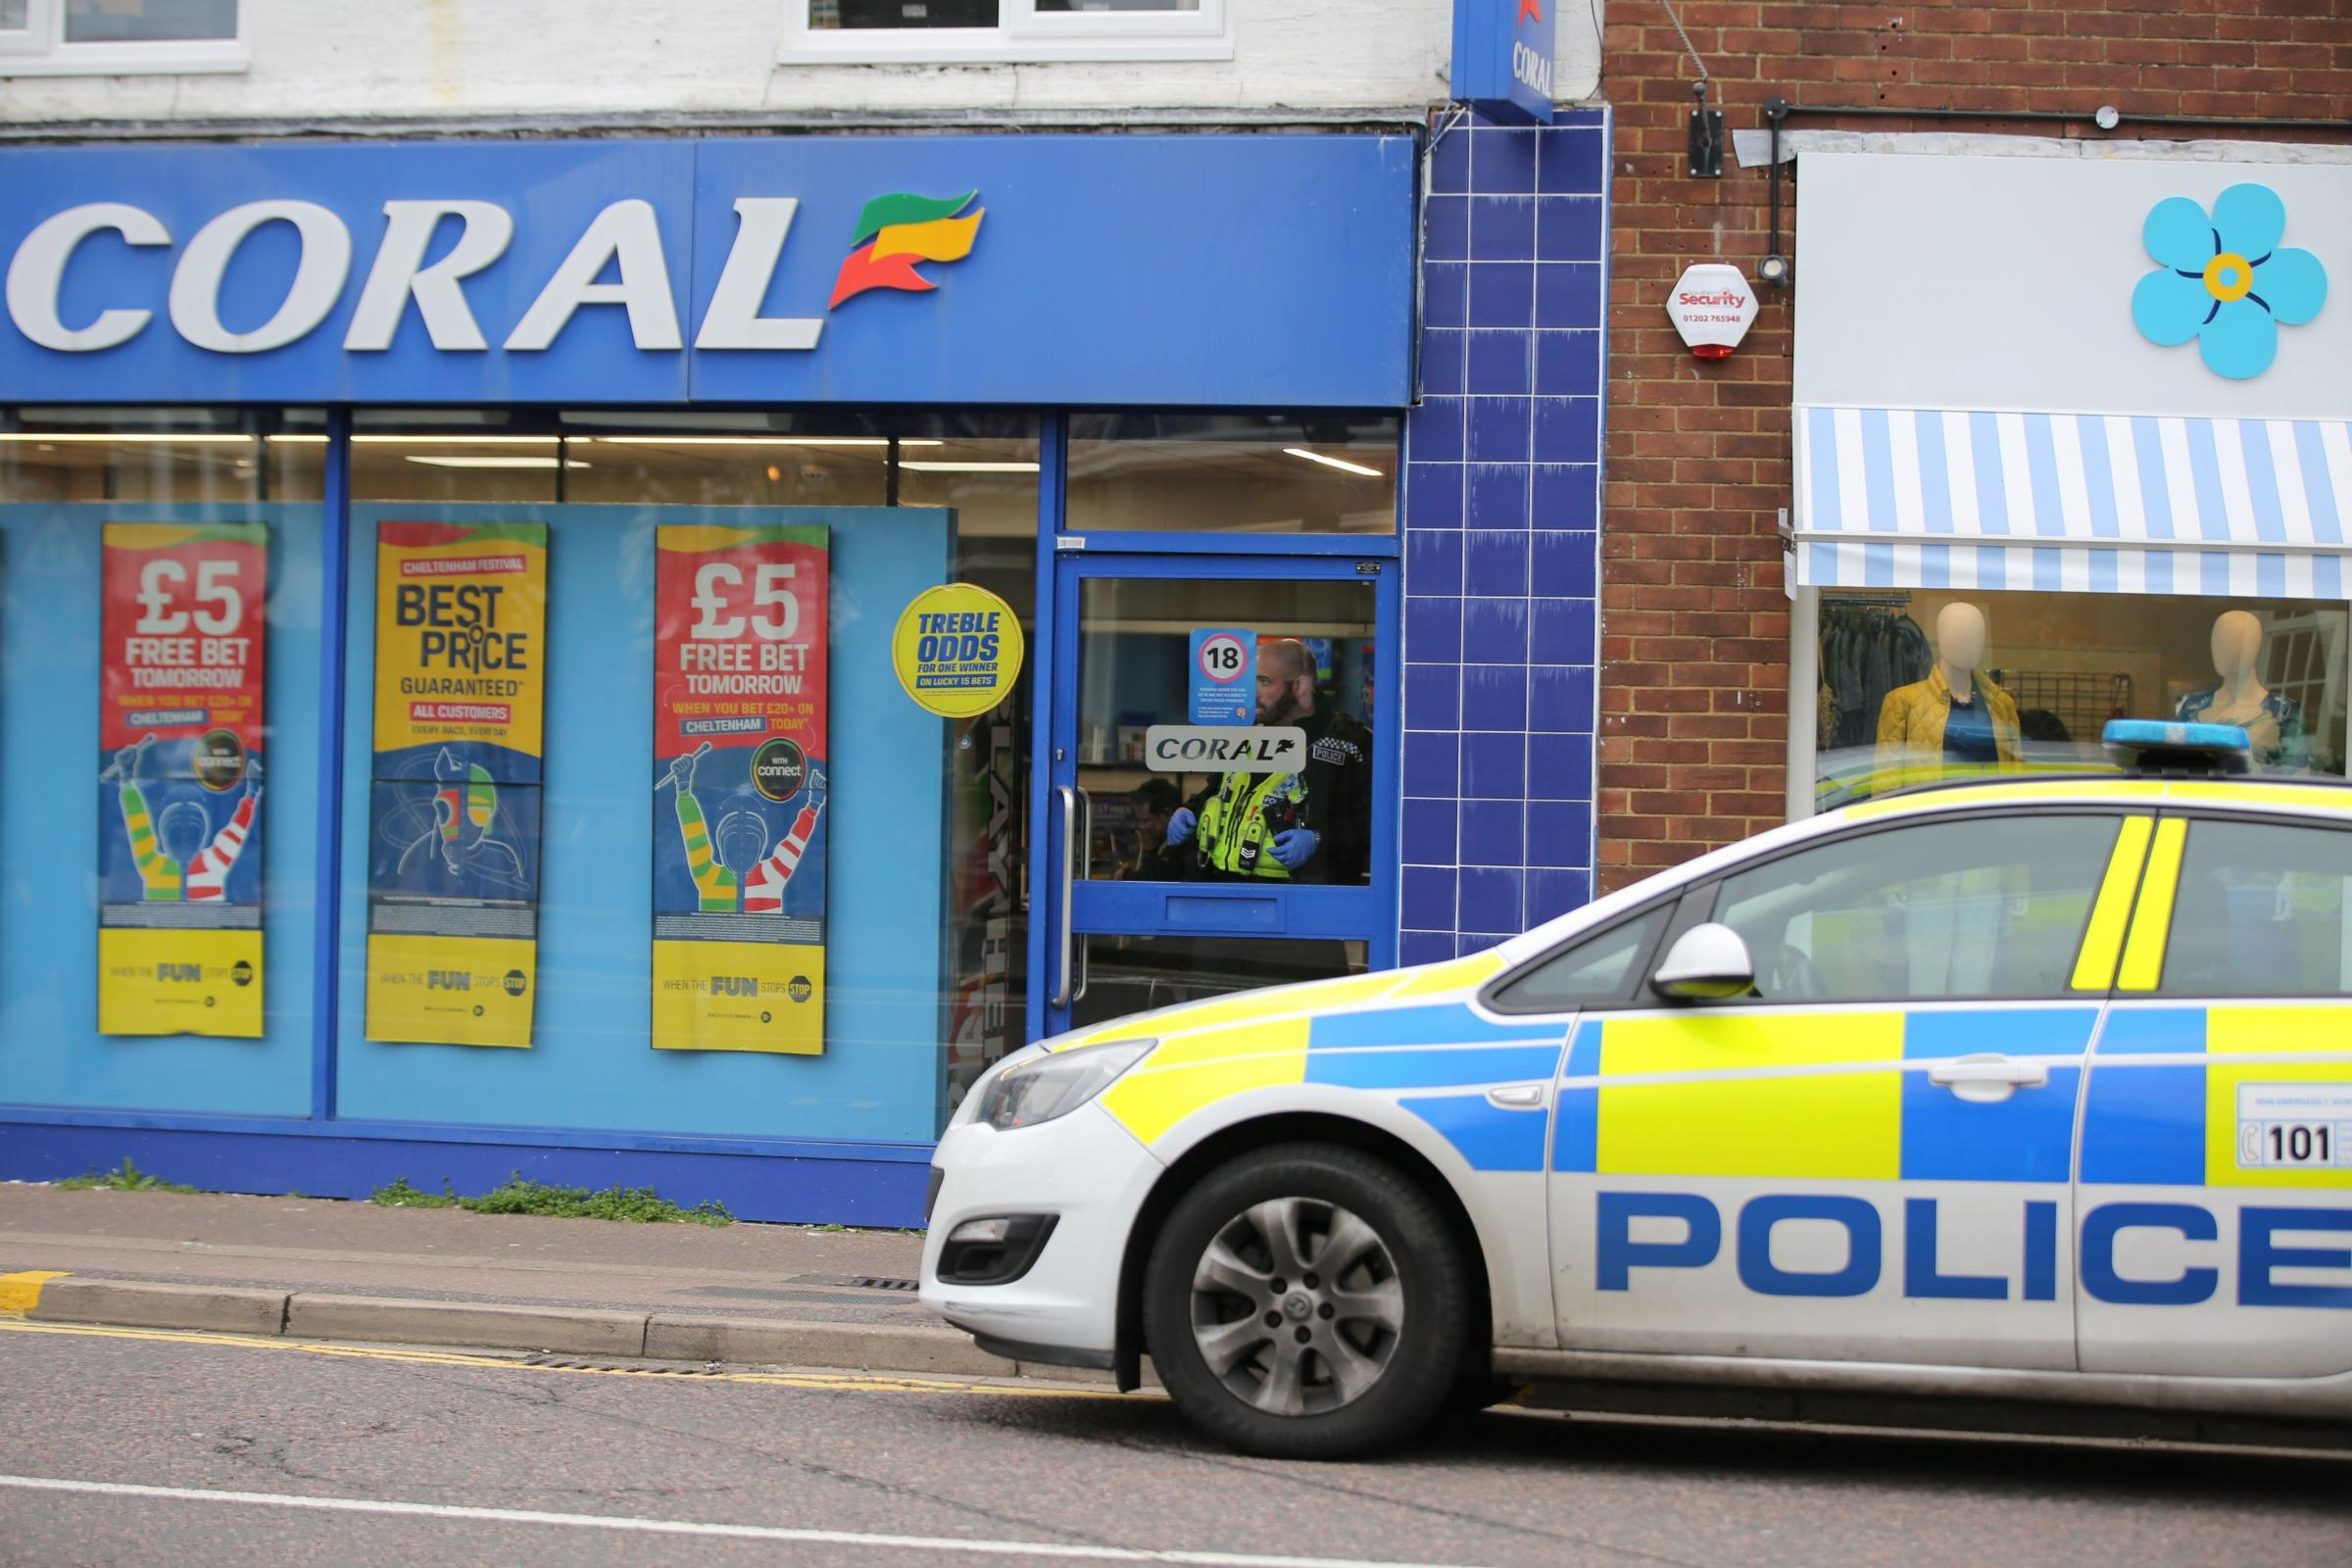 Police outside Coral in Westbourne after a robbery